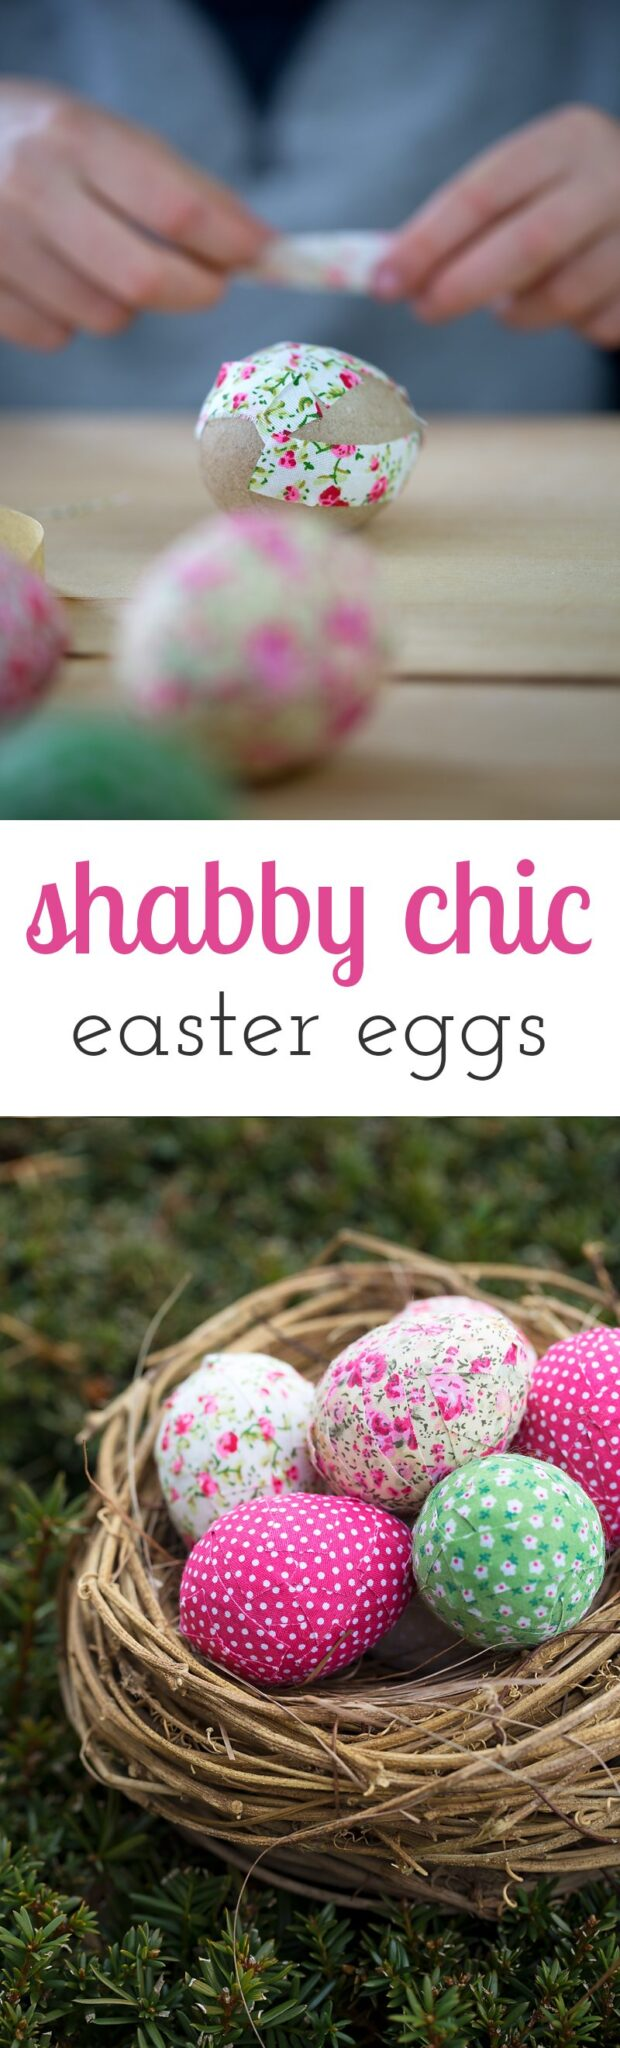 Super simple shabby chic easter eggs for Shabby chic instagram